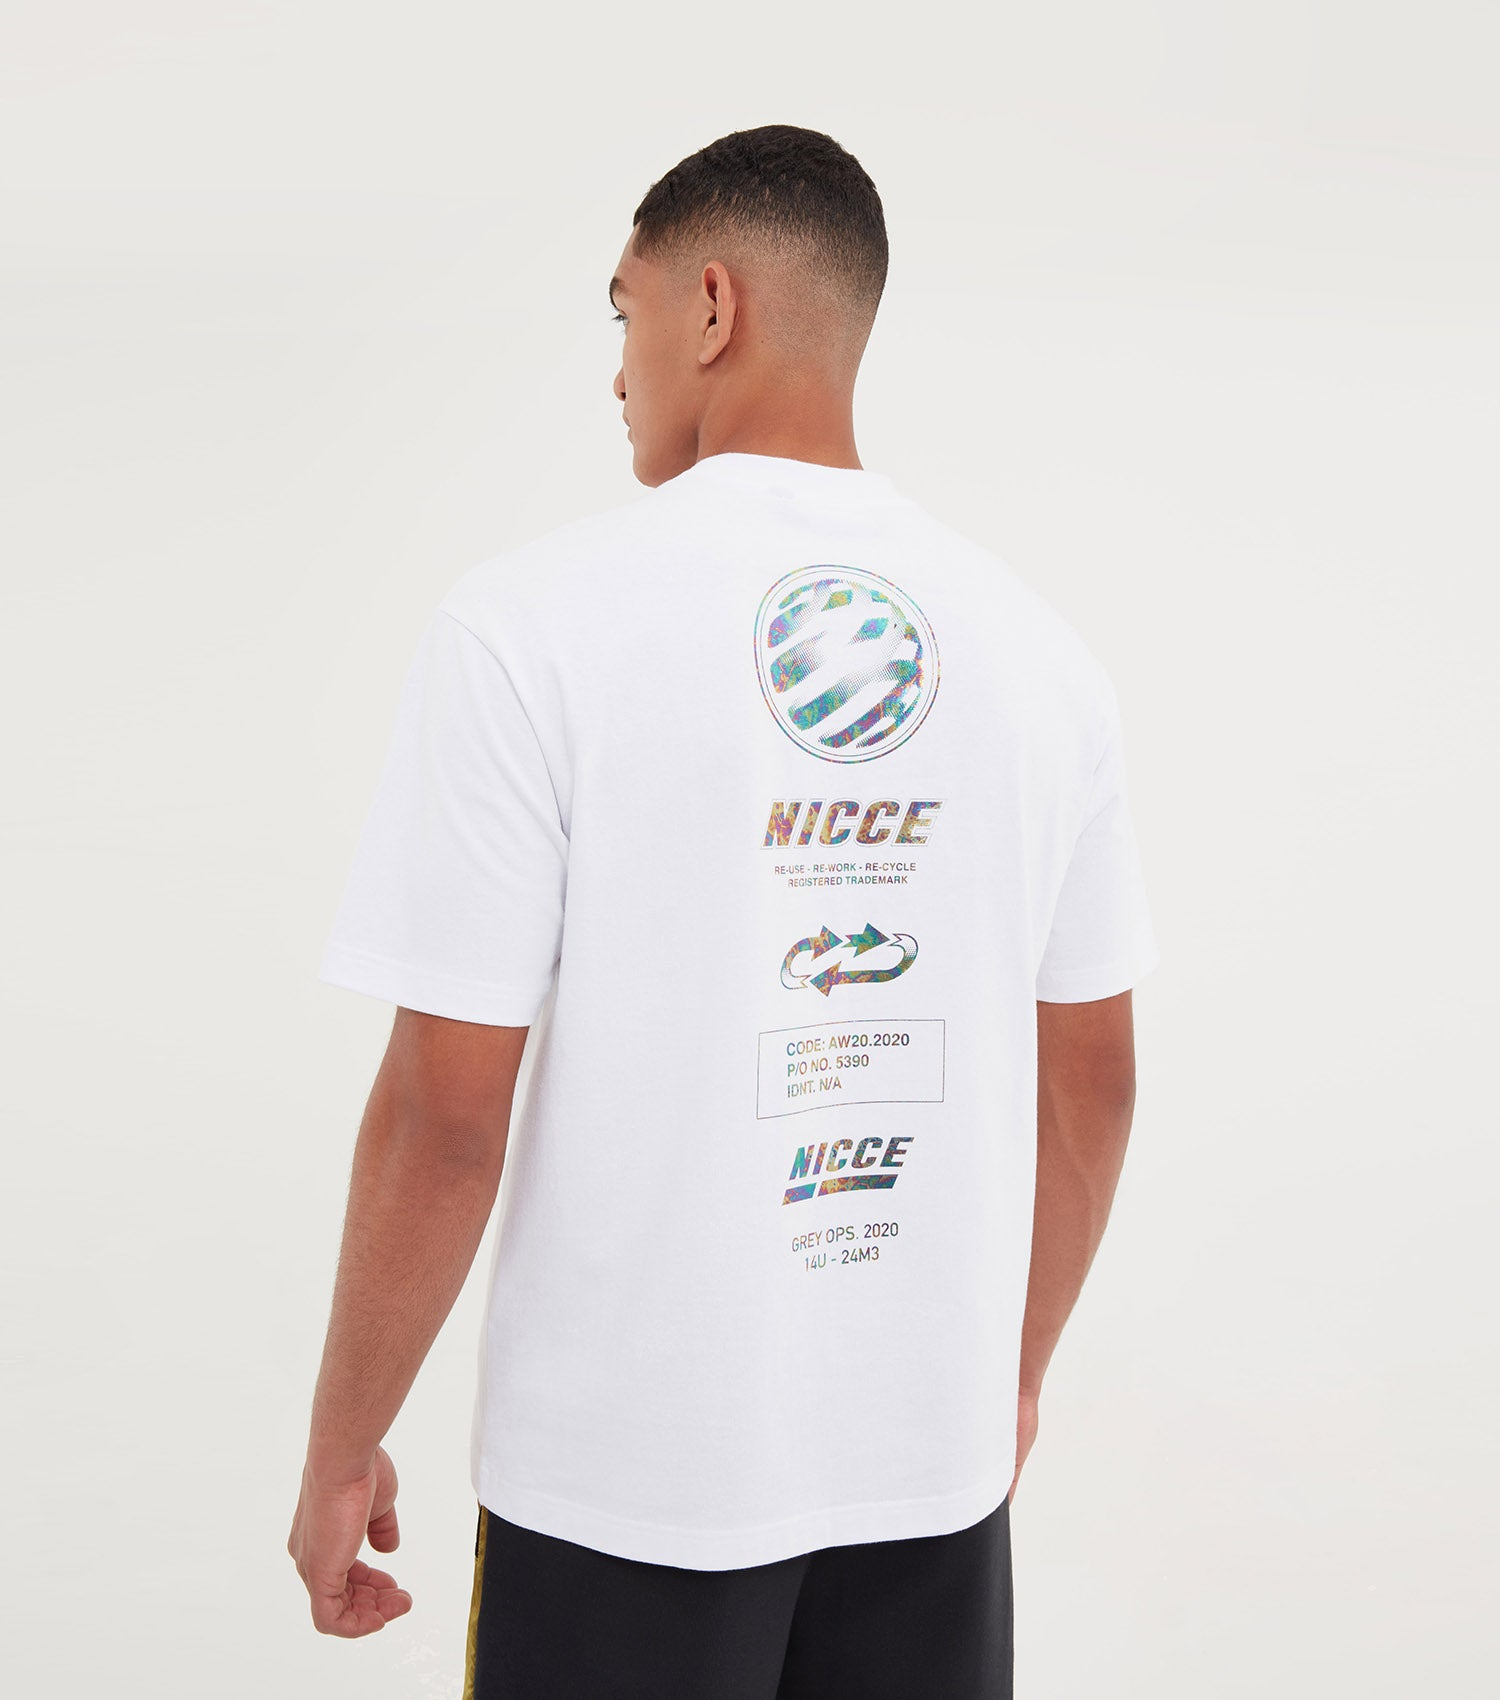 NICCE Mens Tee Type 1 | White, T-Shirts